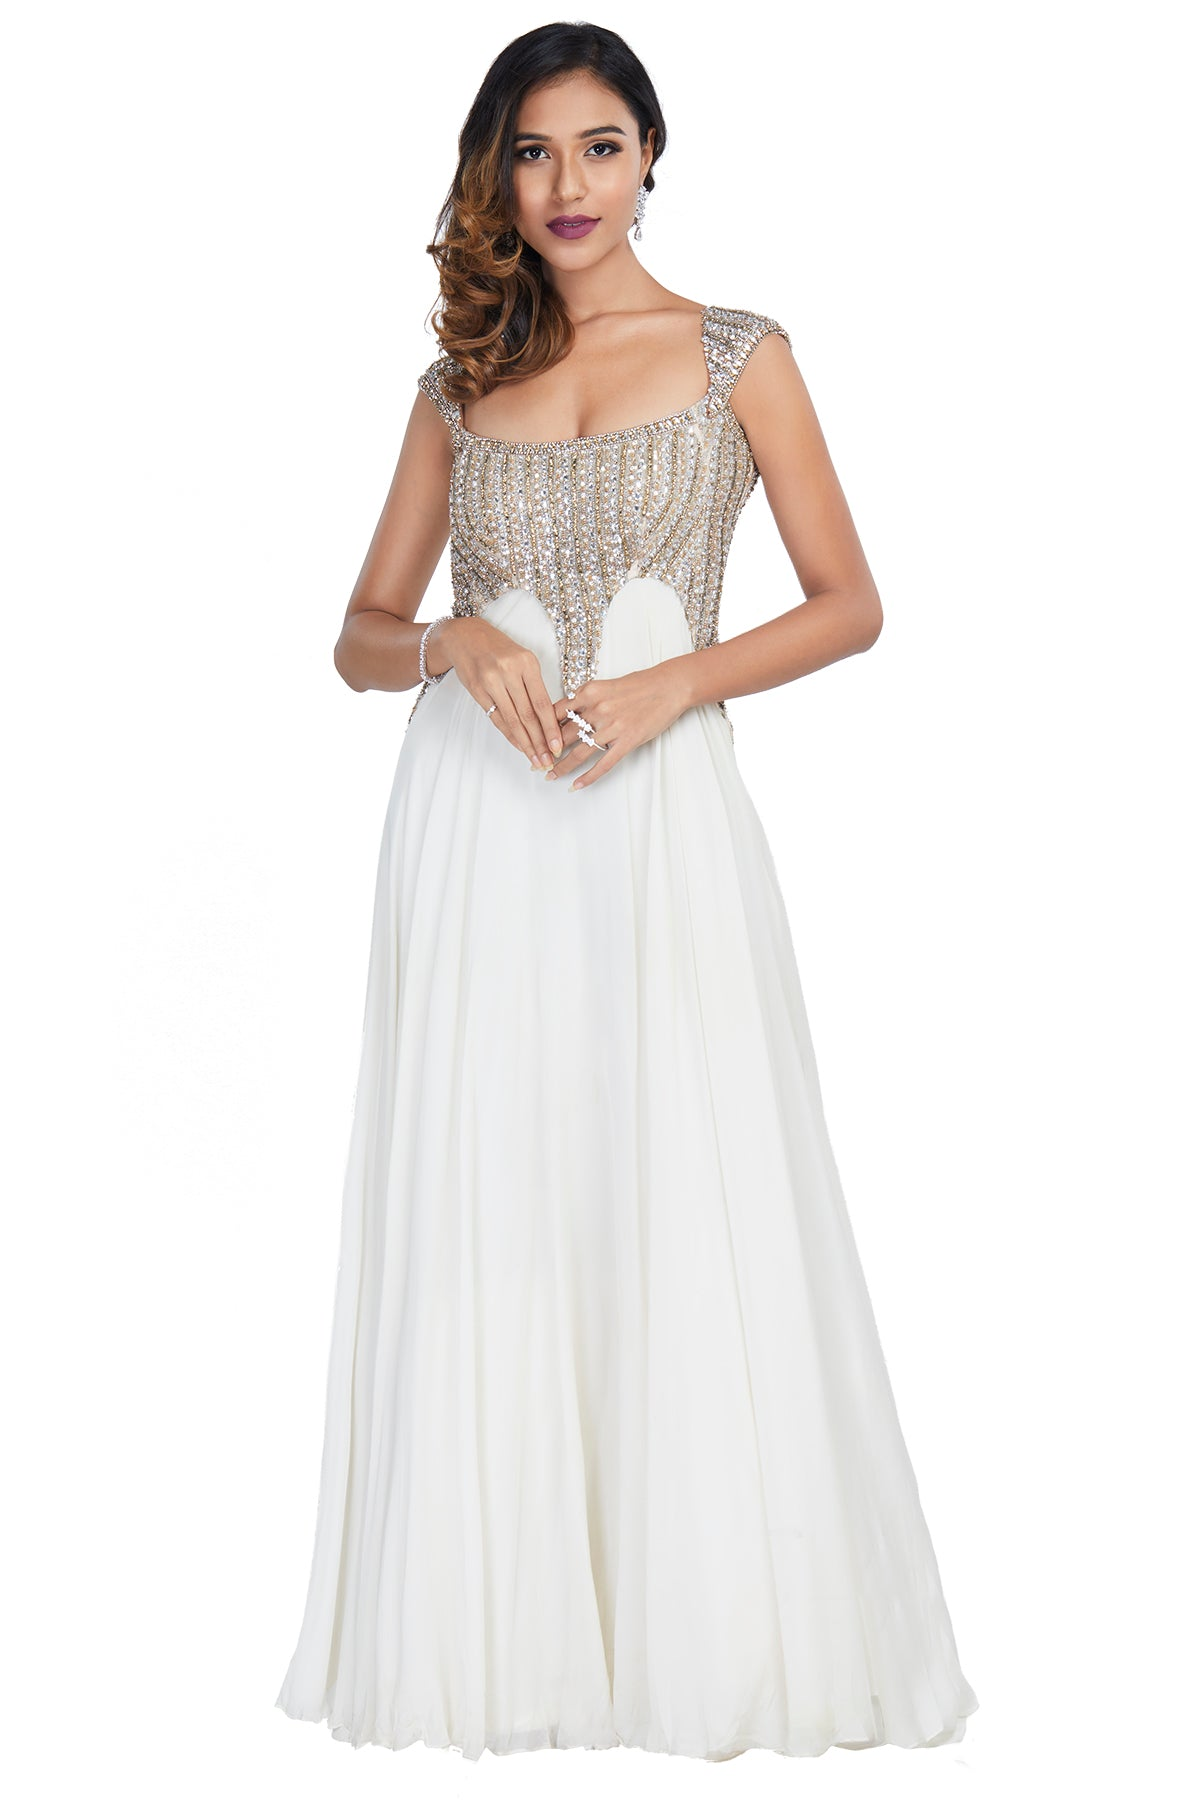 You cannot go unnoticed in this stunning deep neck, gold and white embellished gown with a sexy back!